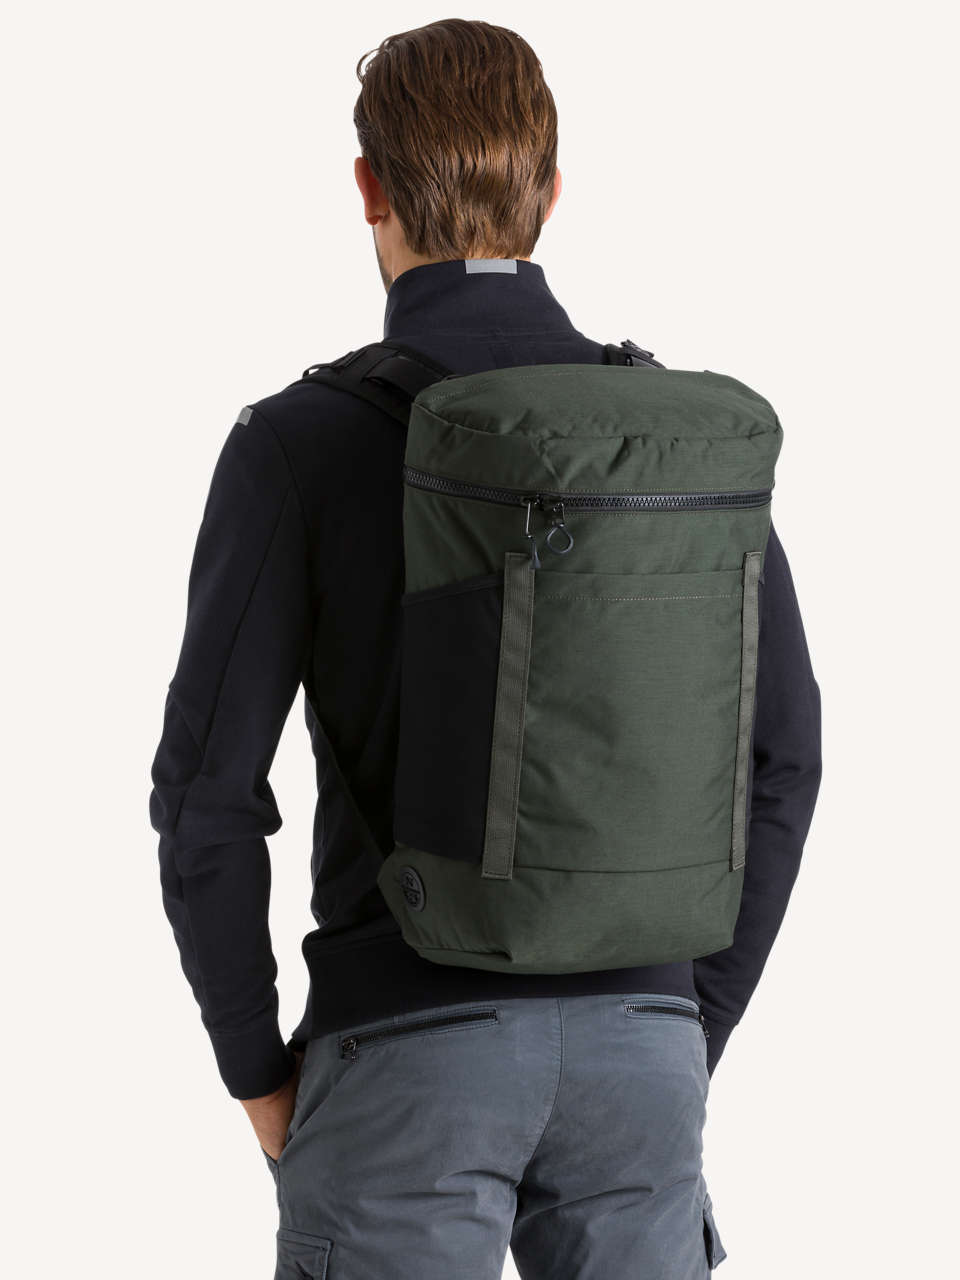 Zip Access Backpack